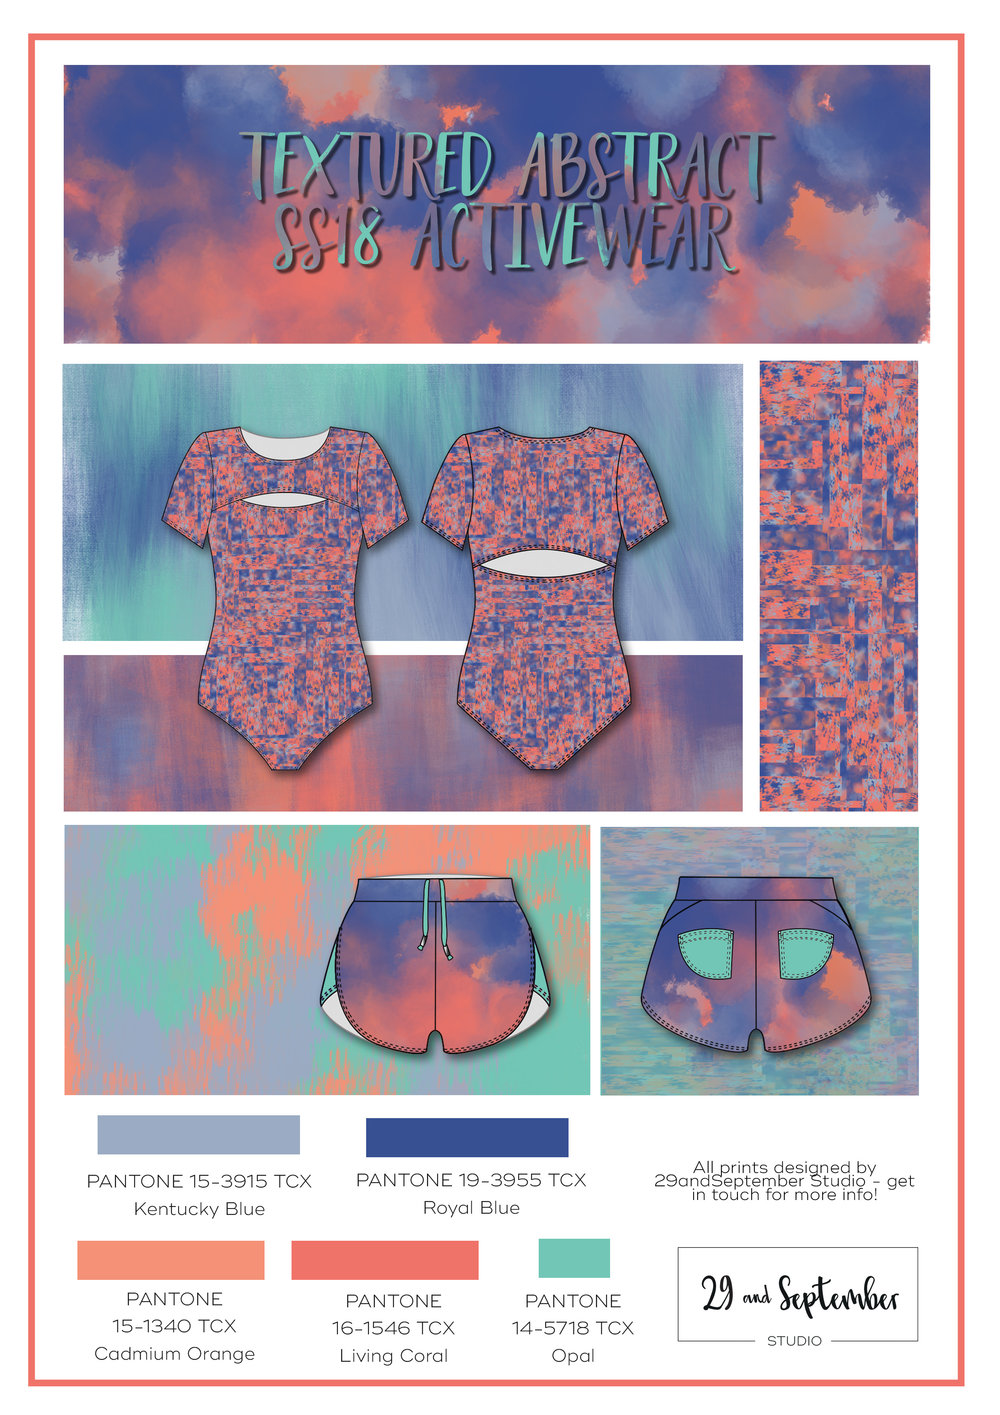 S/S 2018 activewear fashion trends; Textured abstract | Activewear inspiration | technical drawings for fitness apparel by 29andSeptember Studio | Free fashion trend information | WGSN